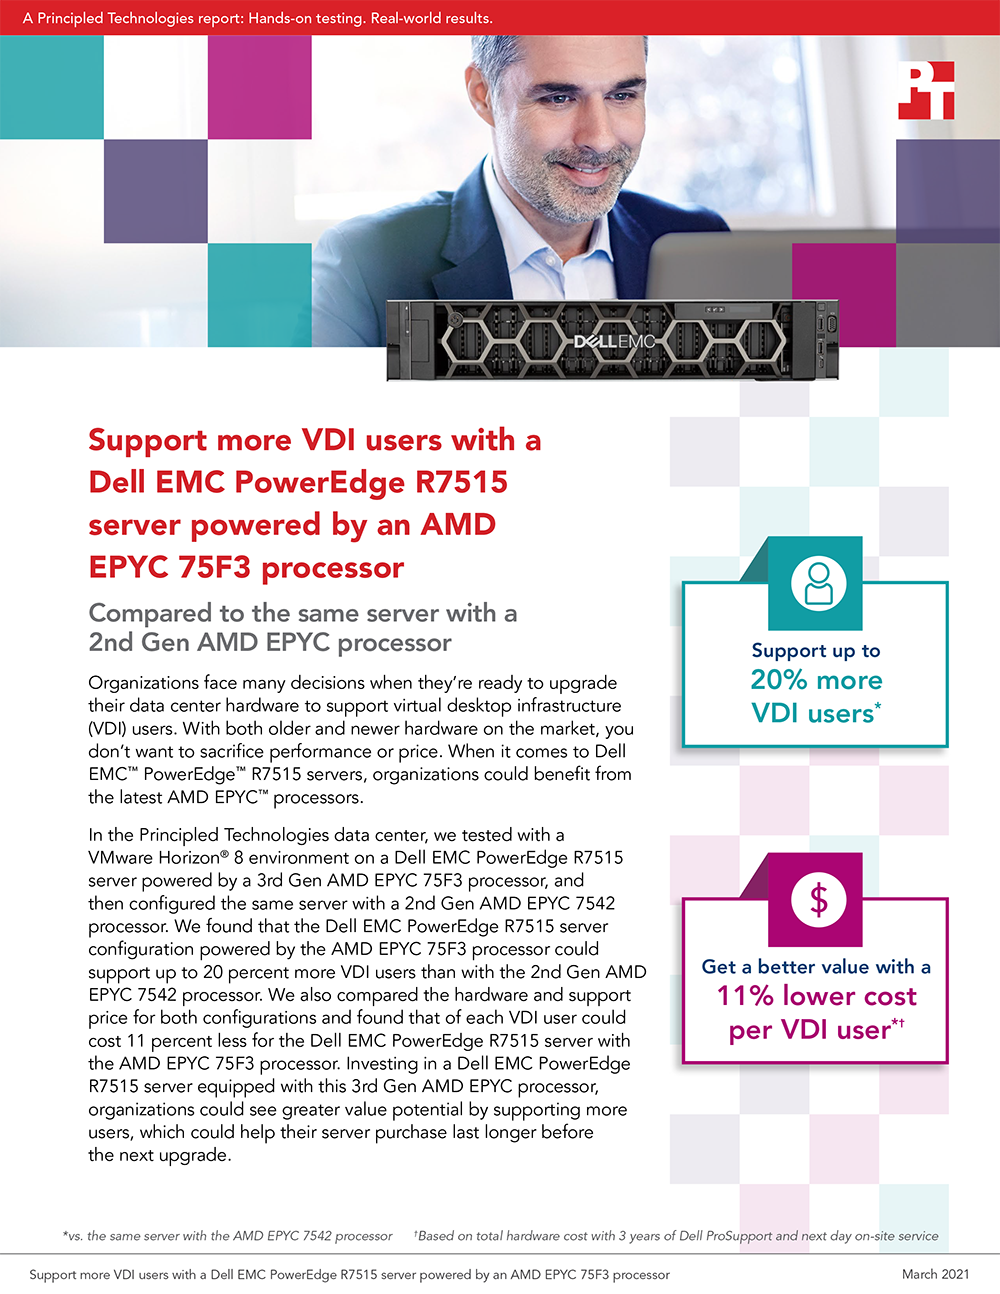 Principled Technologies Releases VDI Study on a Dell EMC PowerEdge R7515 Server with Two Generations of AMD EPYC Processors